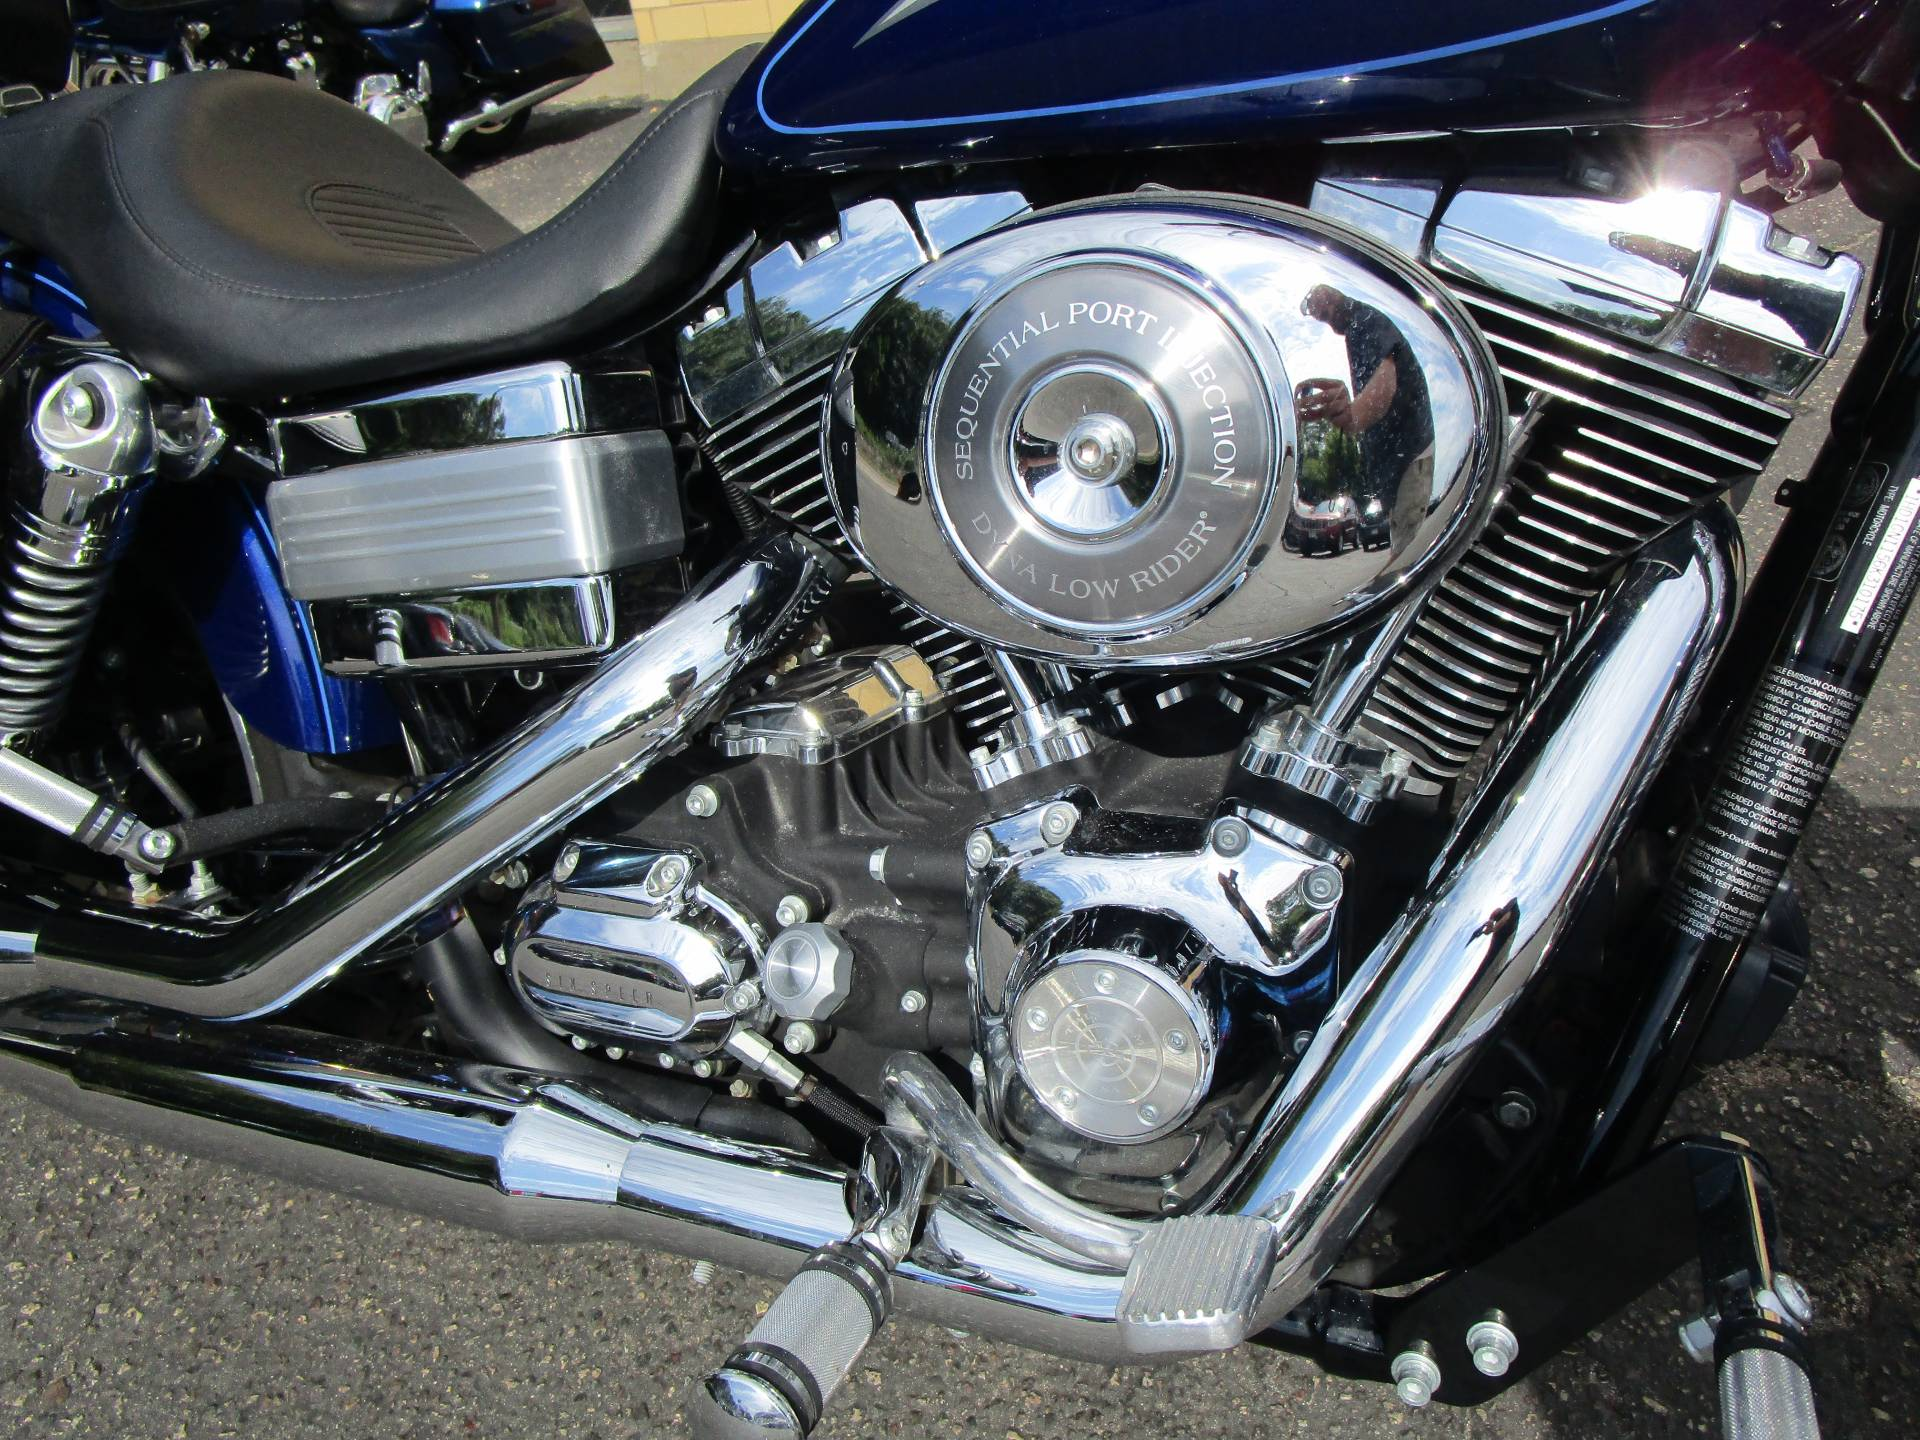 2006 Harley-Davidson Dyna™ Low Rider® in South Saint Paul, Minnesota - Photo 5